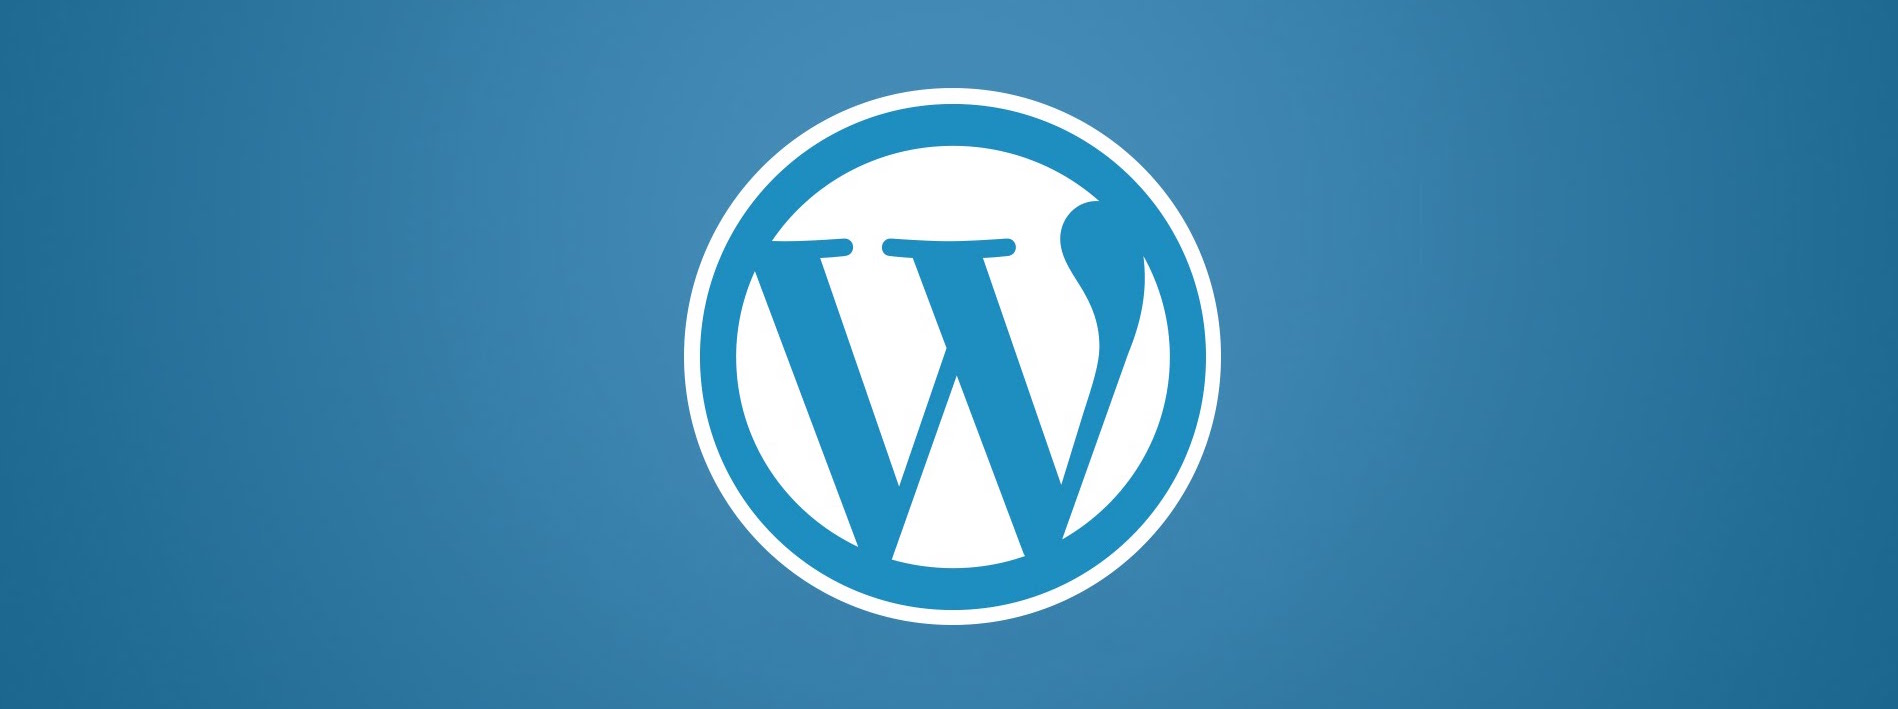 Wordpress cybersecurity